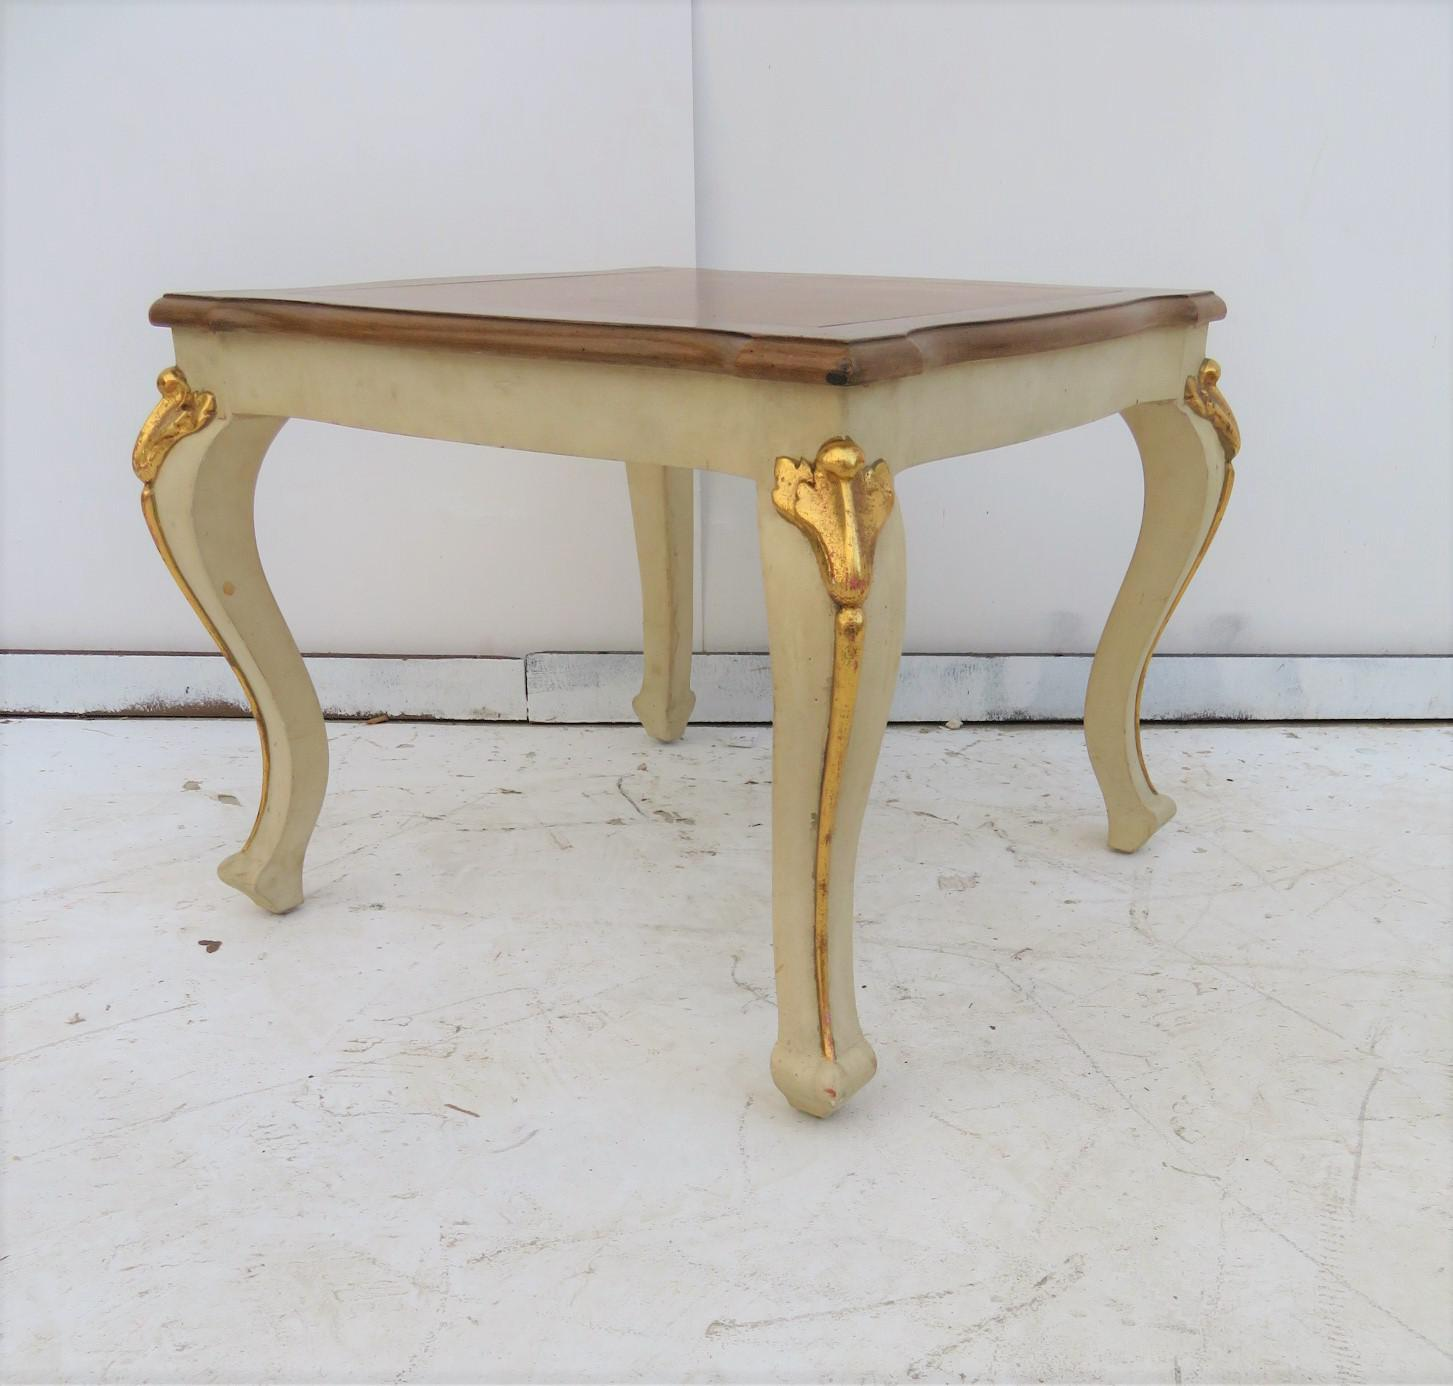 Charmant Baker Italian Taboret Table   Image 4 Of 4